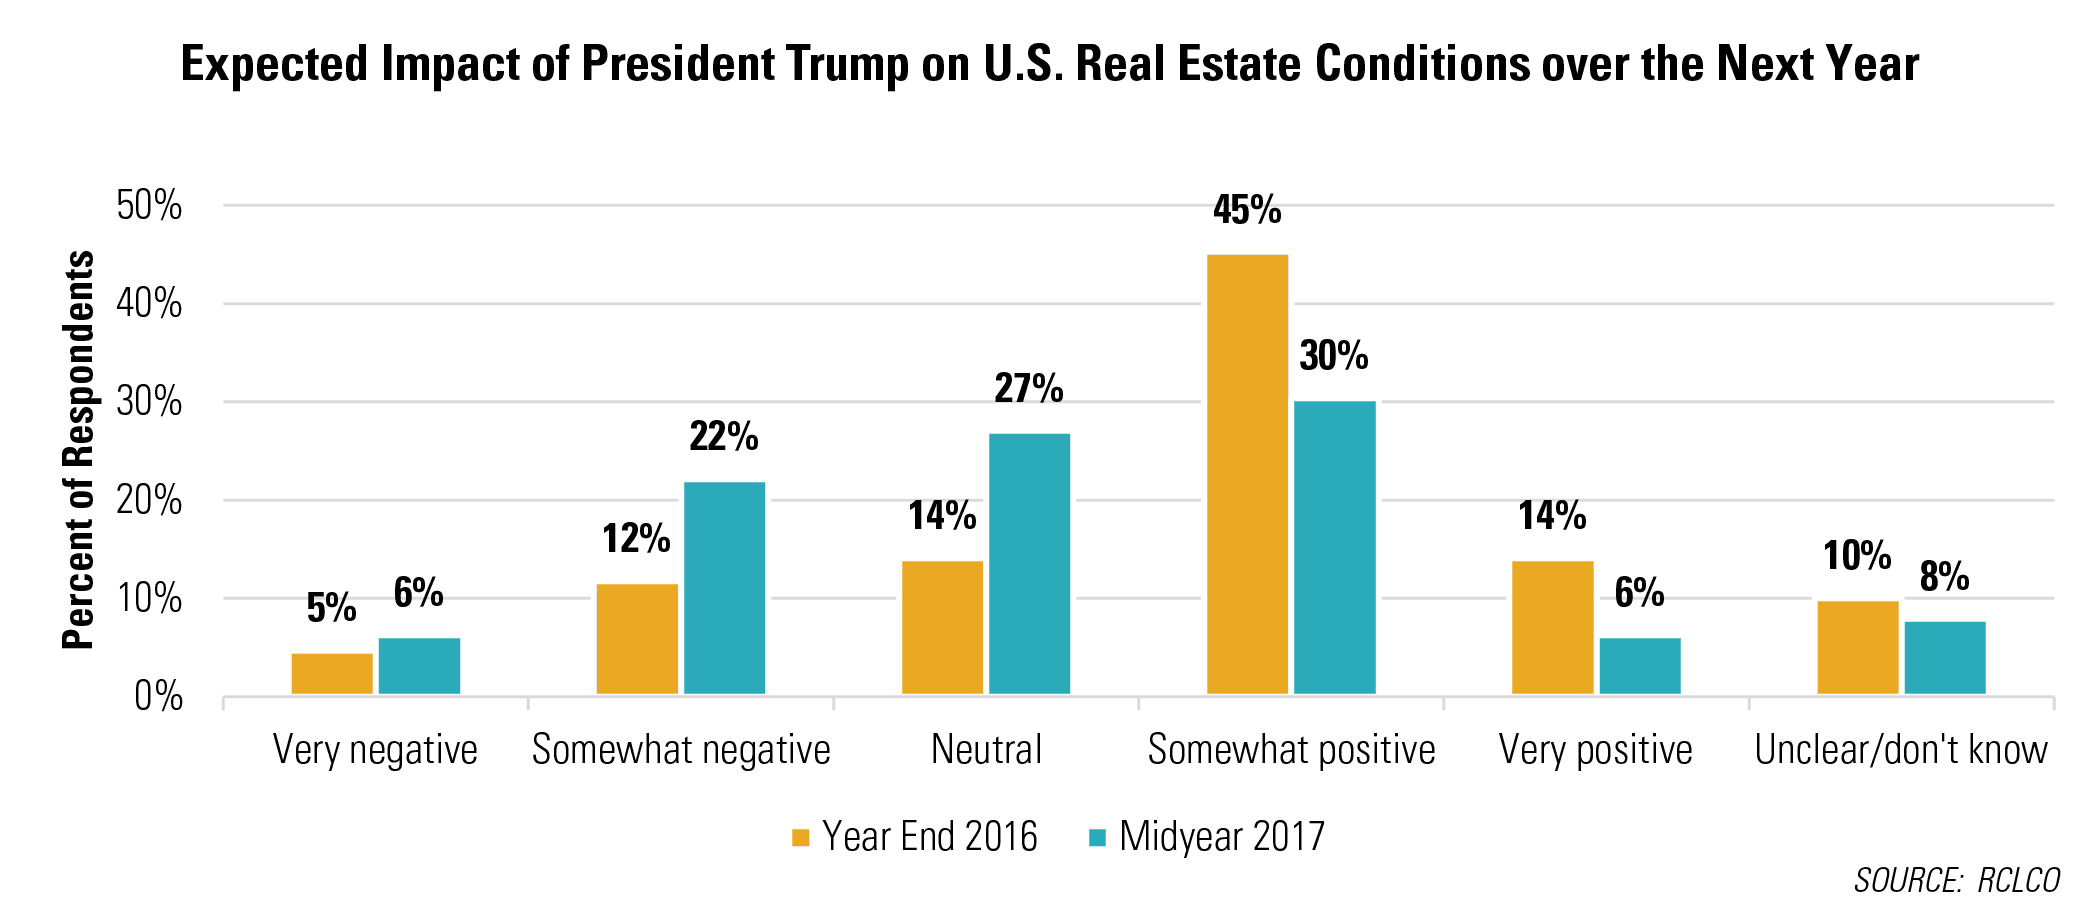 Expected Impact of President Trump on U.S. Real Estate Conditions over the Next Year